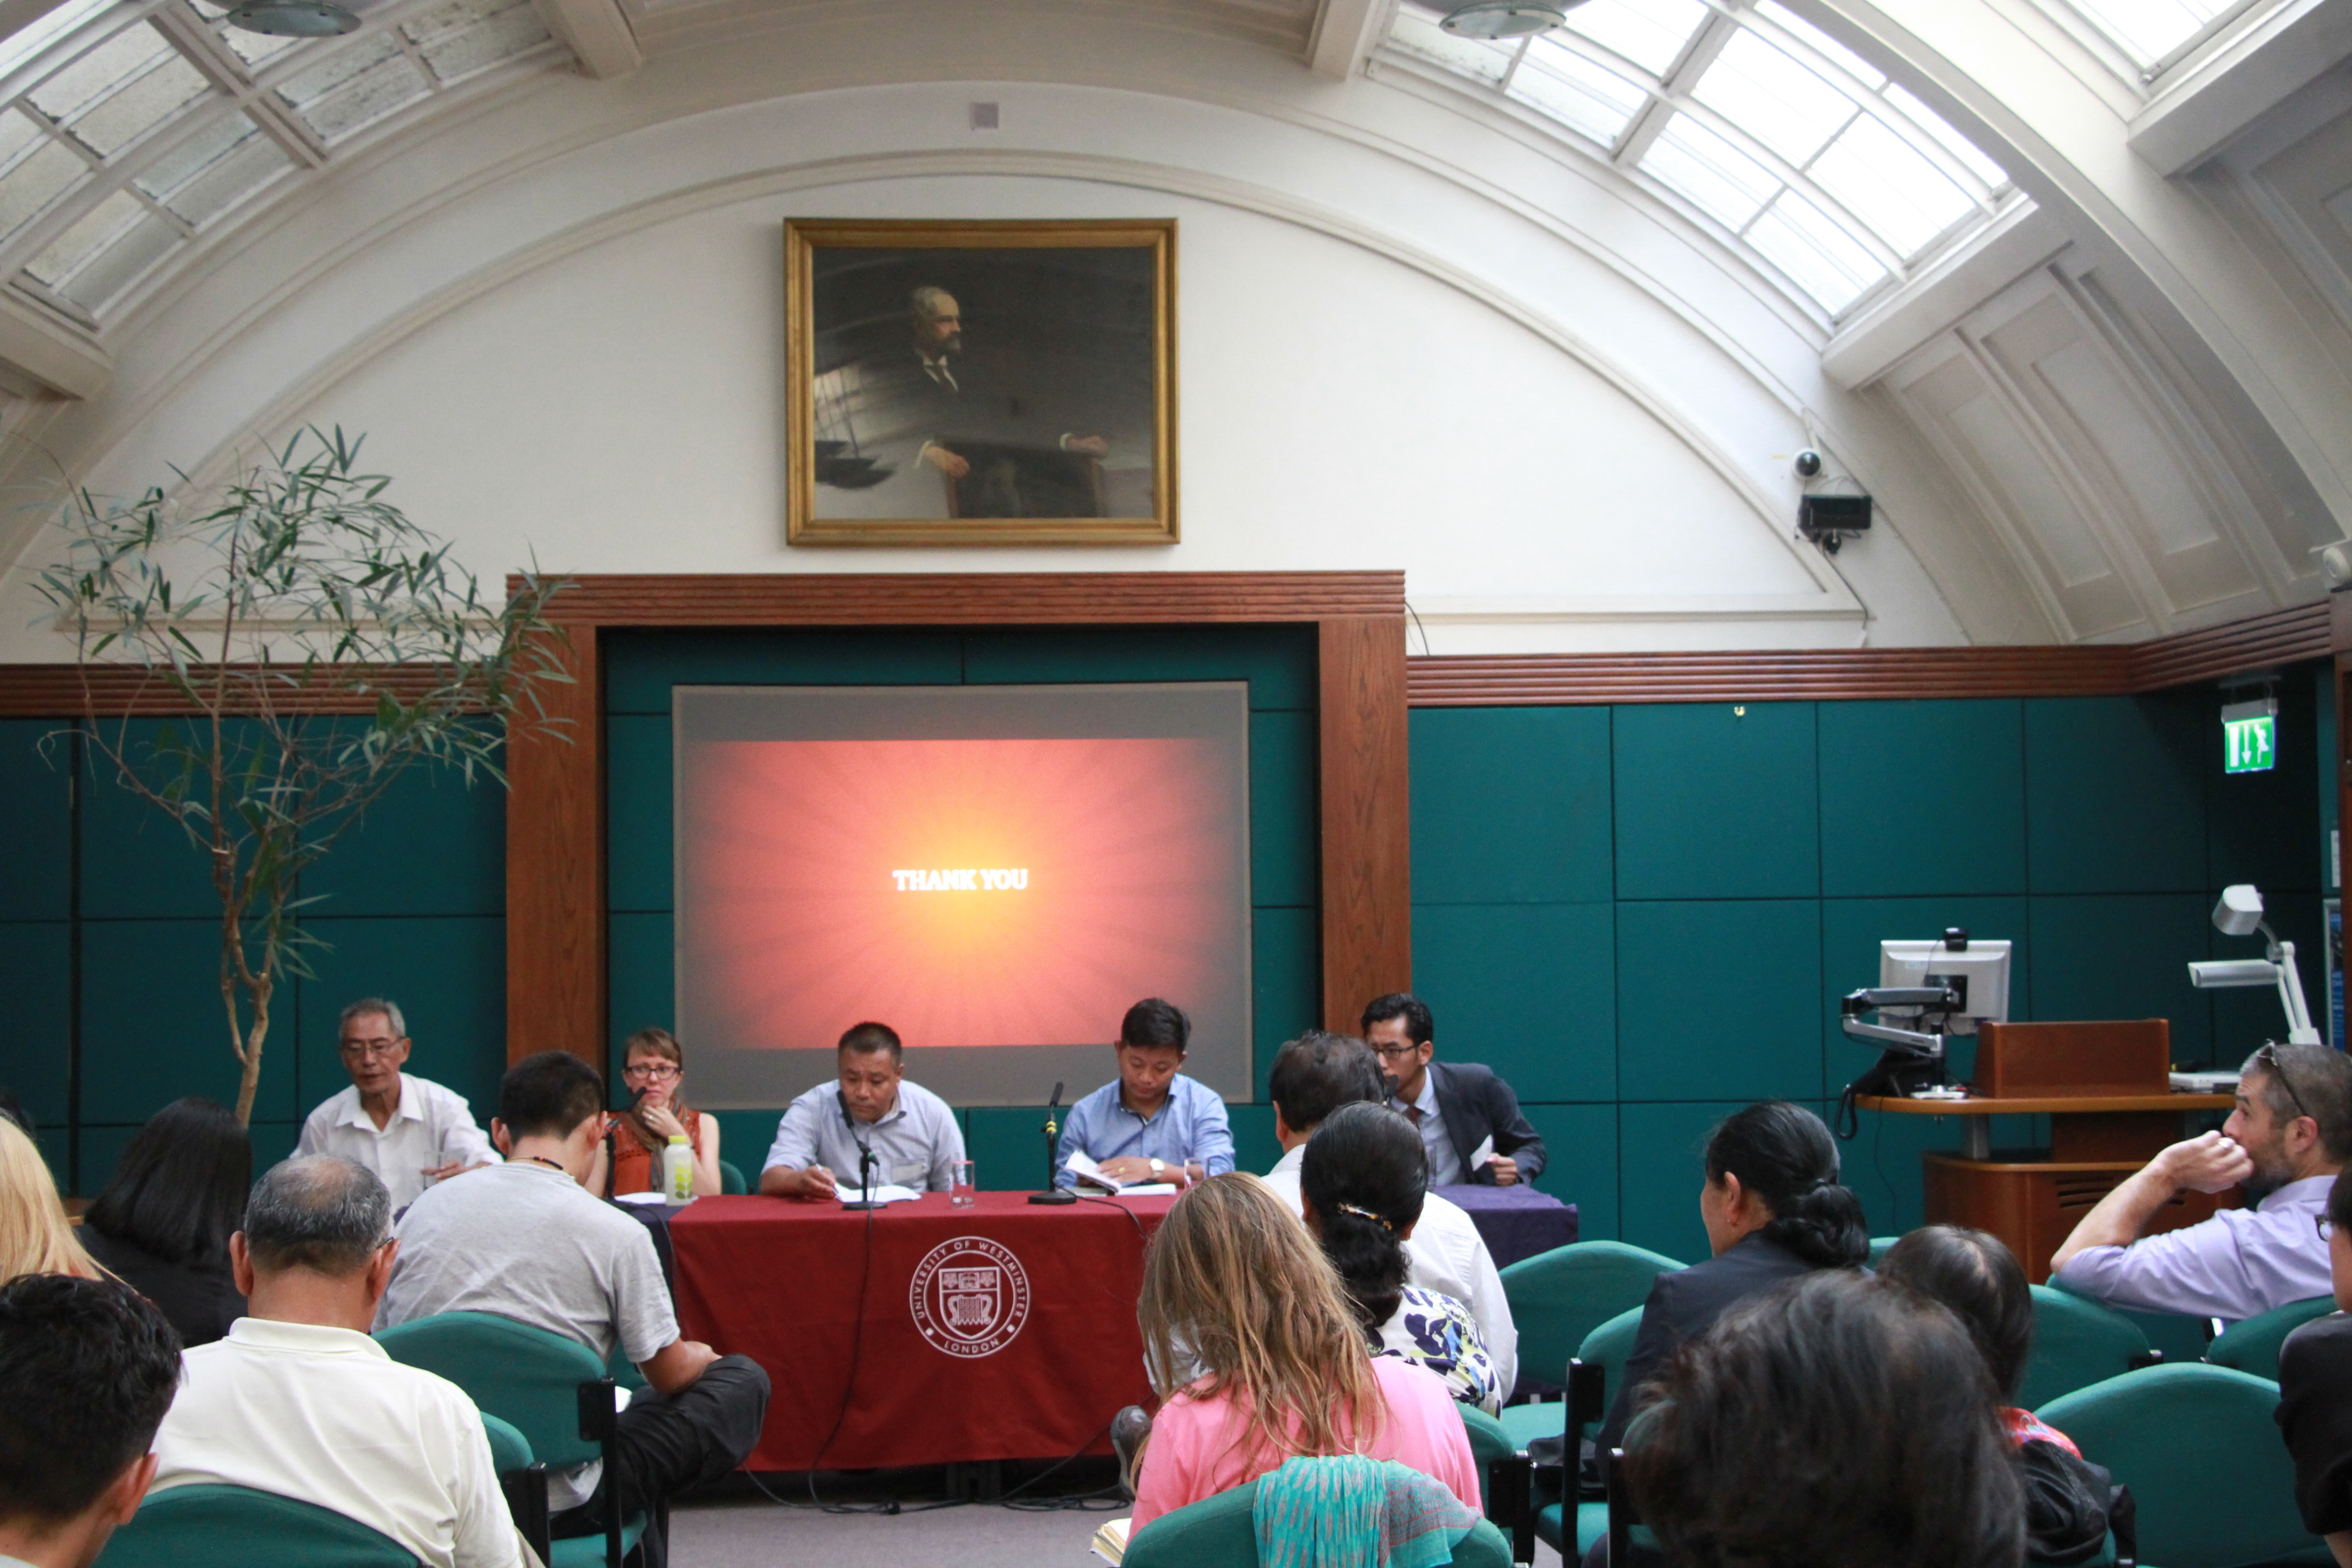 Tibet Policy Institute at the University of Westminster